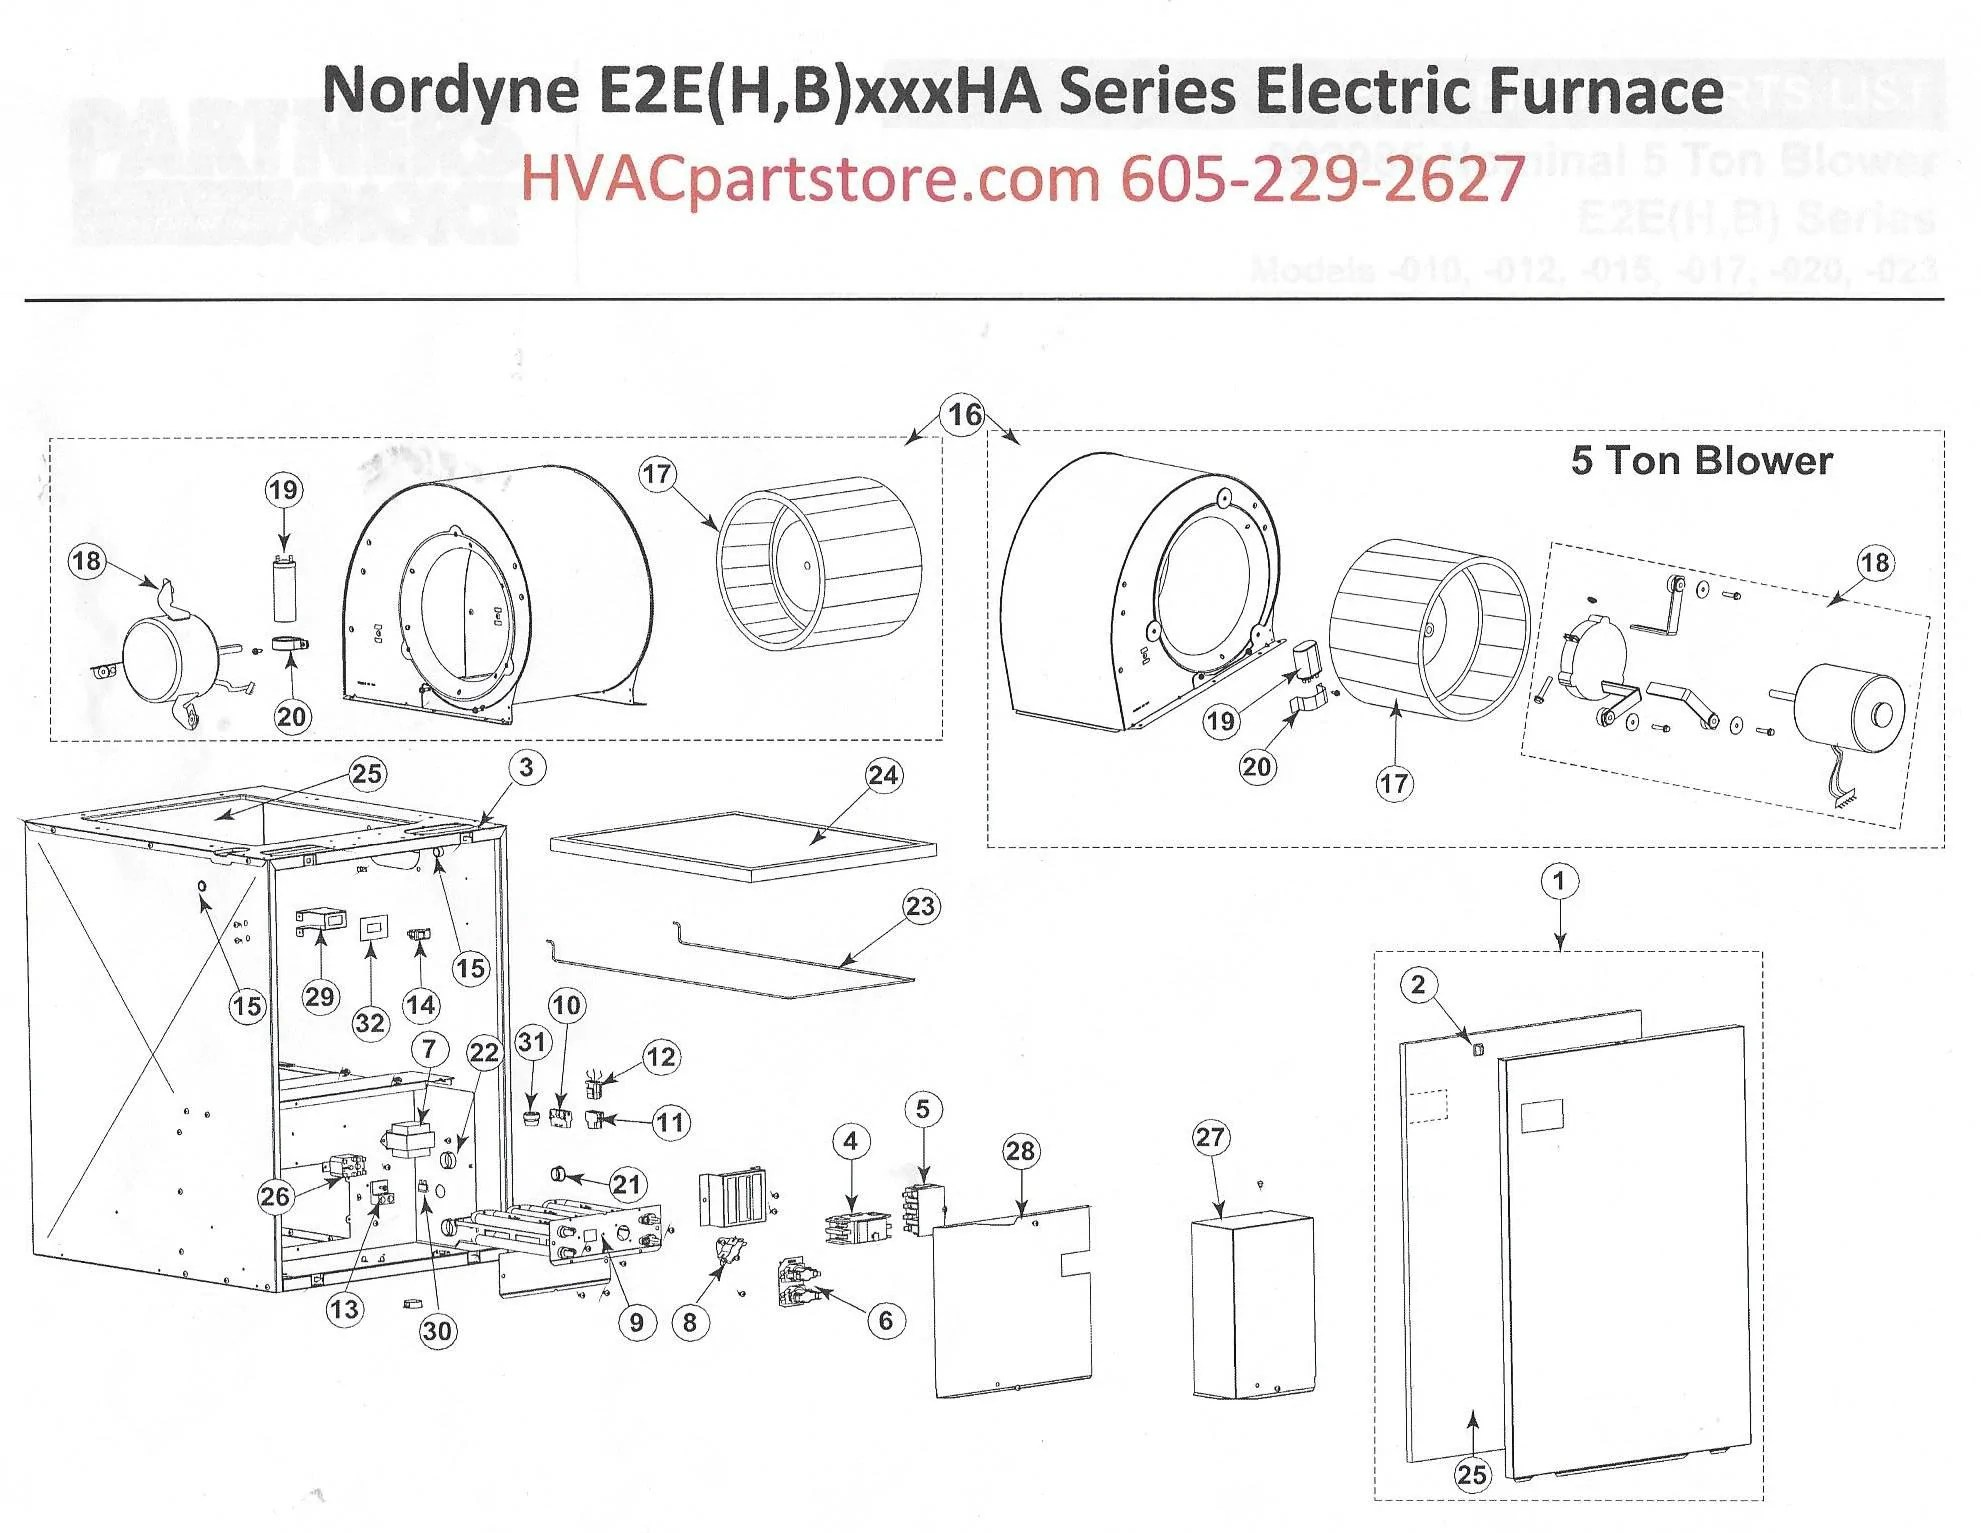 medium resolution of e2eh012ha nordyne electric furnace parts hvacpartstore nordyne electric furnace diagram